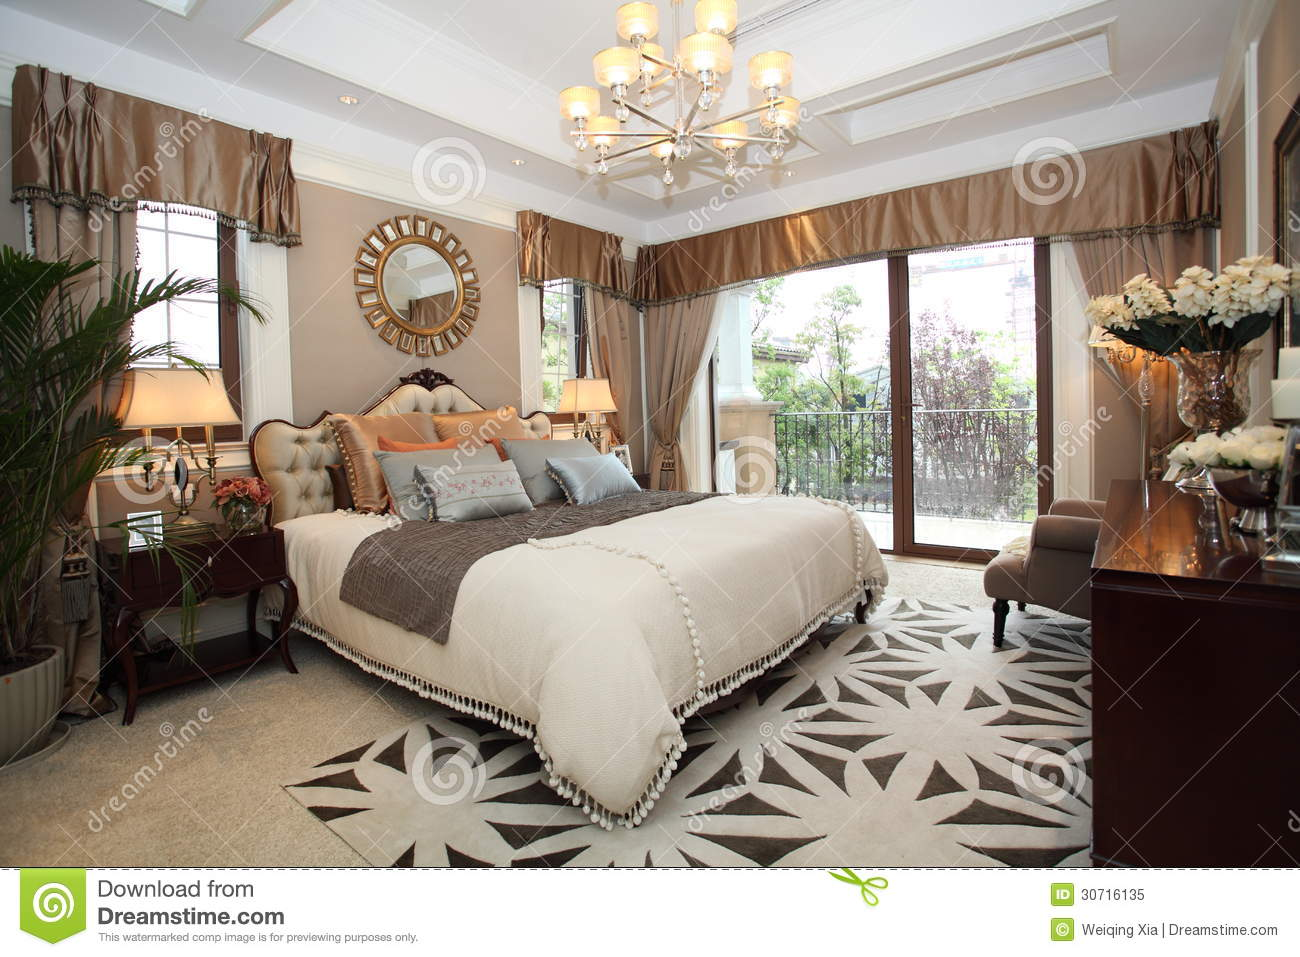 luxury home bedroom royalty free stock photo image 30716135